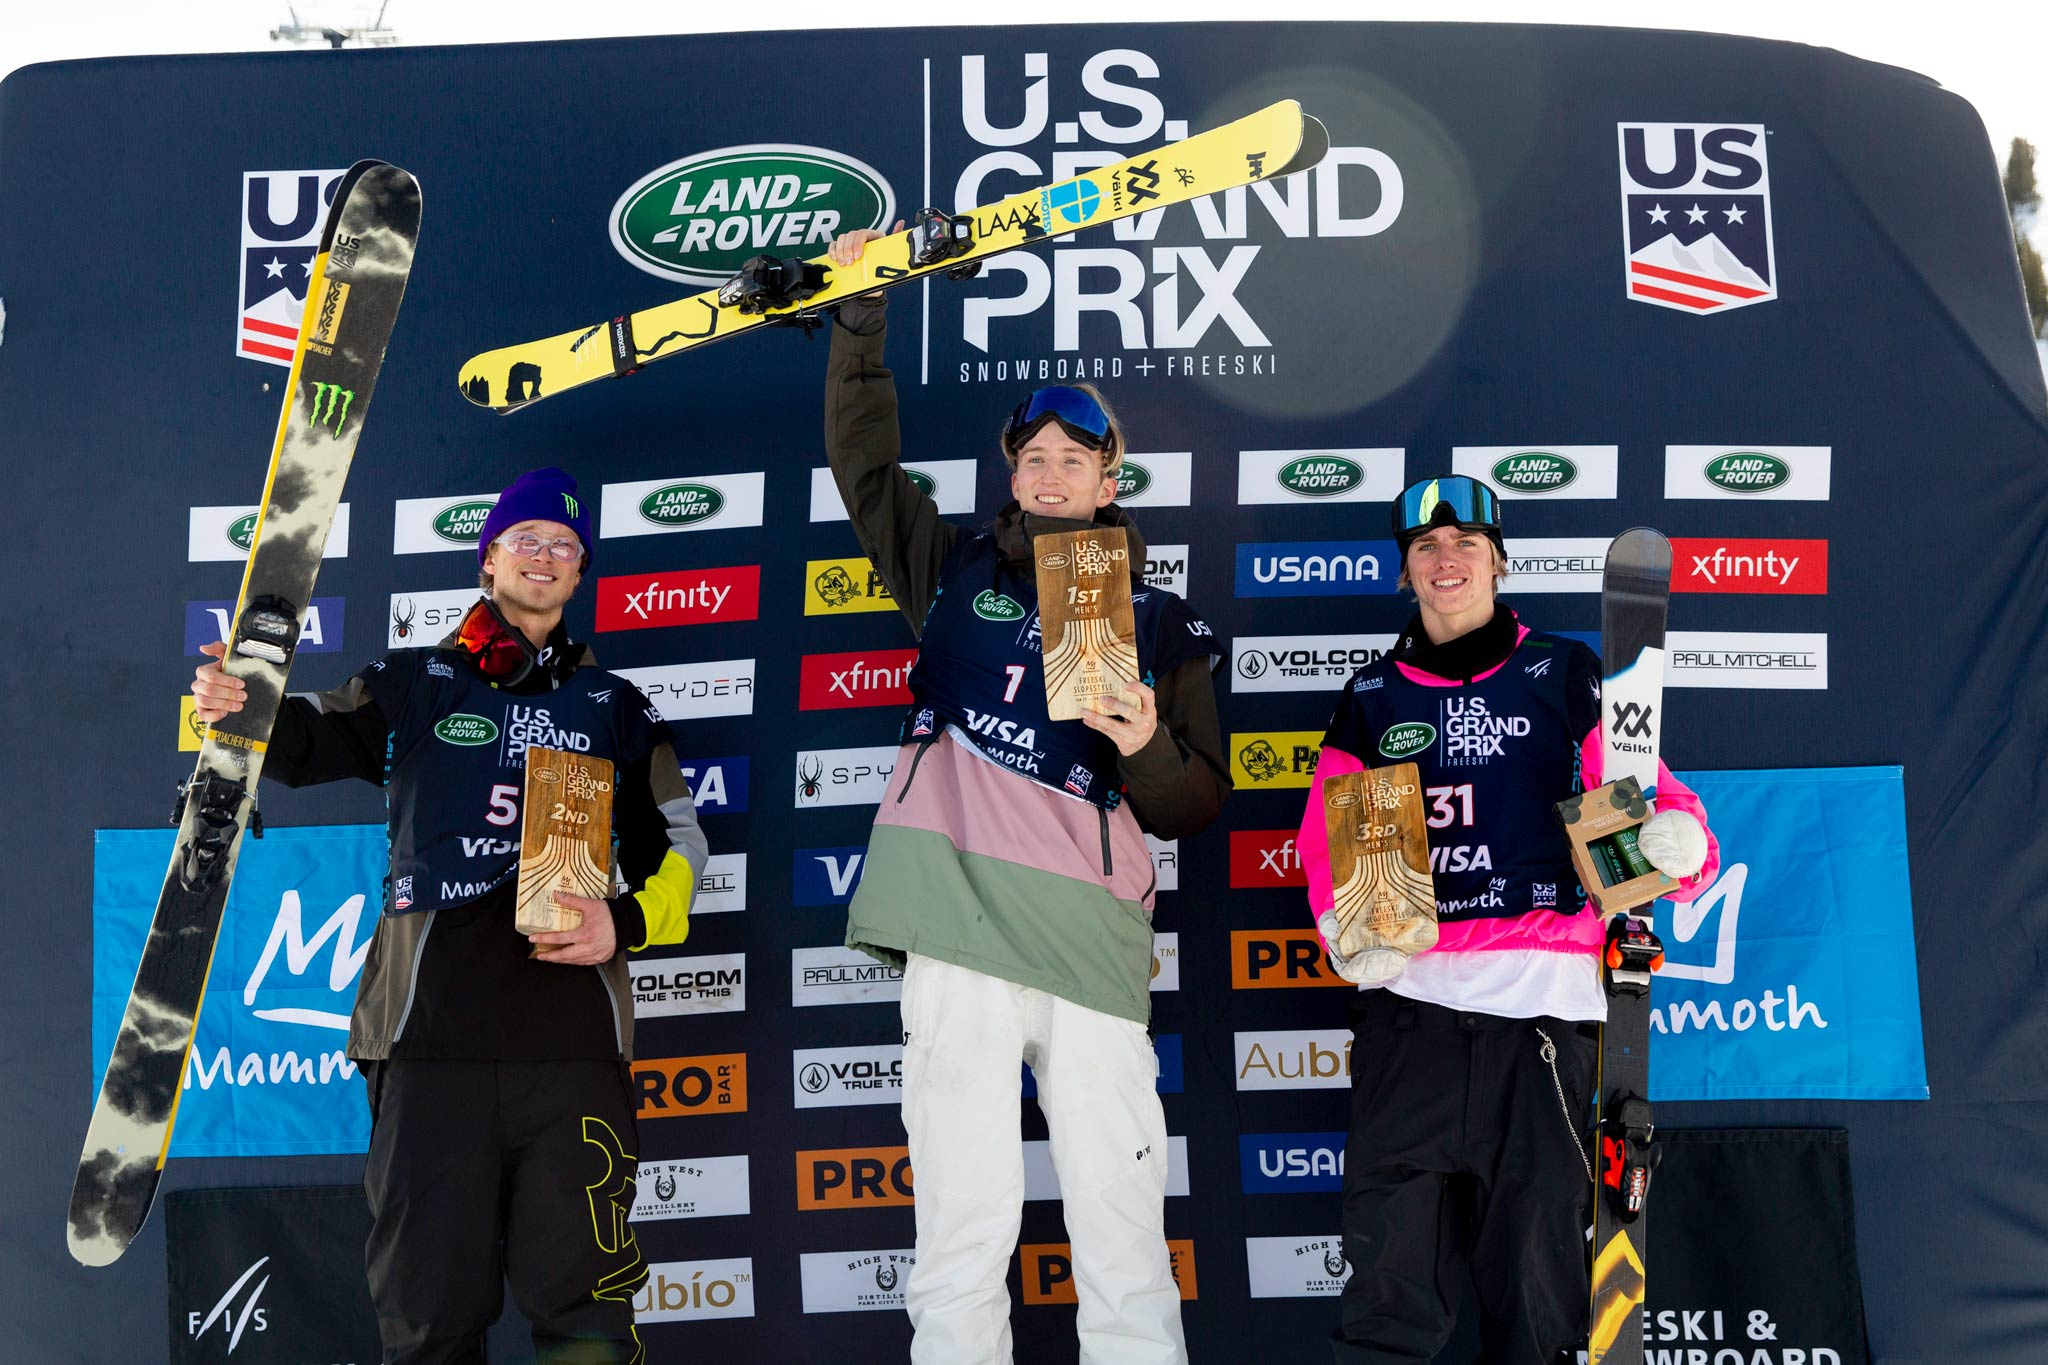 Das Podium der Männer beim FIS Freestyle Slopestyle Contest in Mammoth Mountain 2020: Colby Stevenson (USA), Andri Ragettli (SUI), Deven Fagan (USA) - Foto: FIS Freestyle